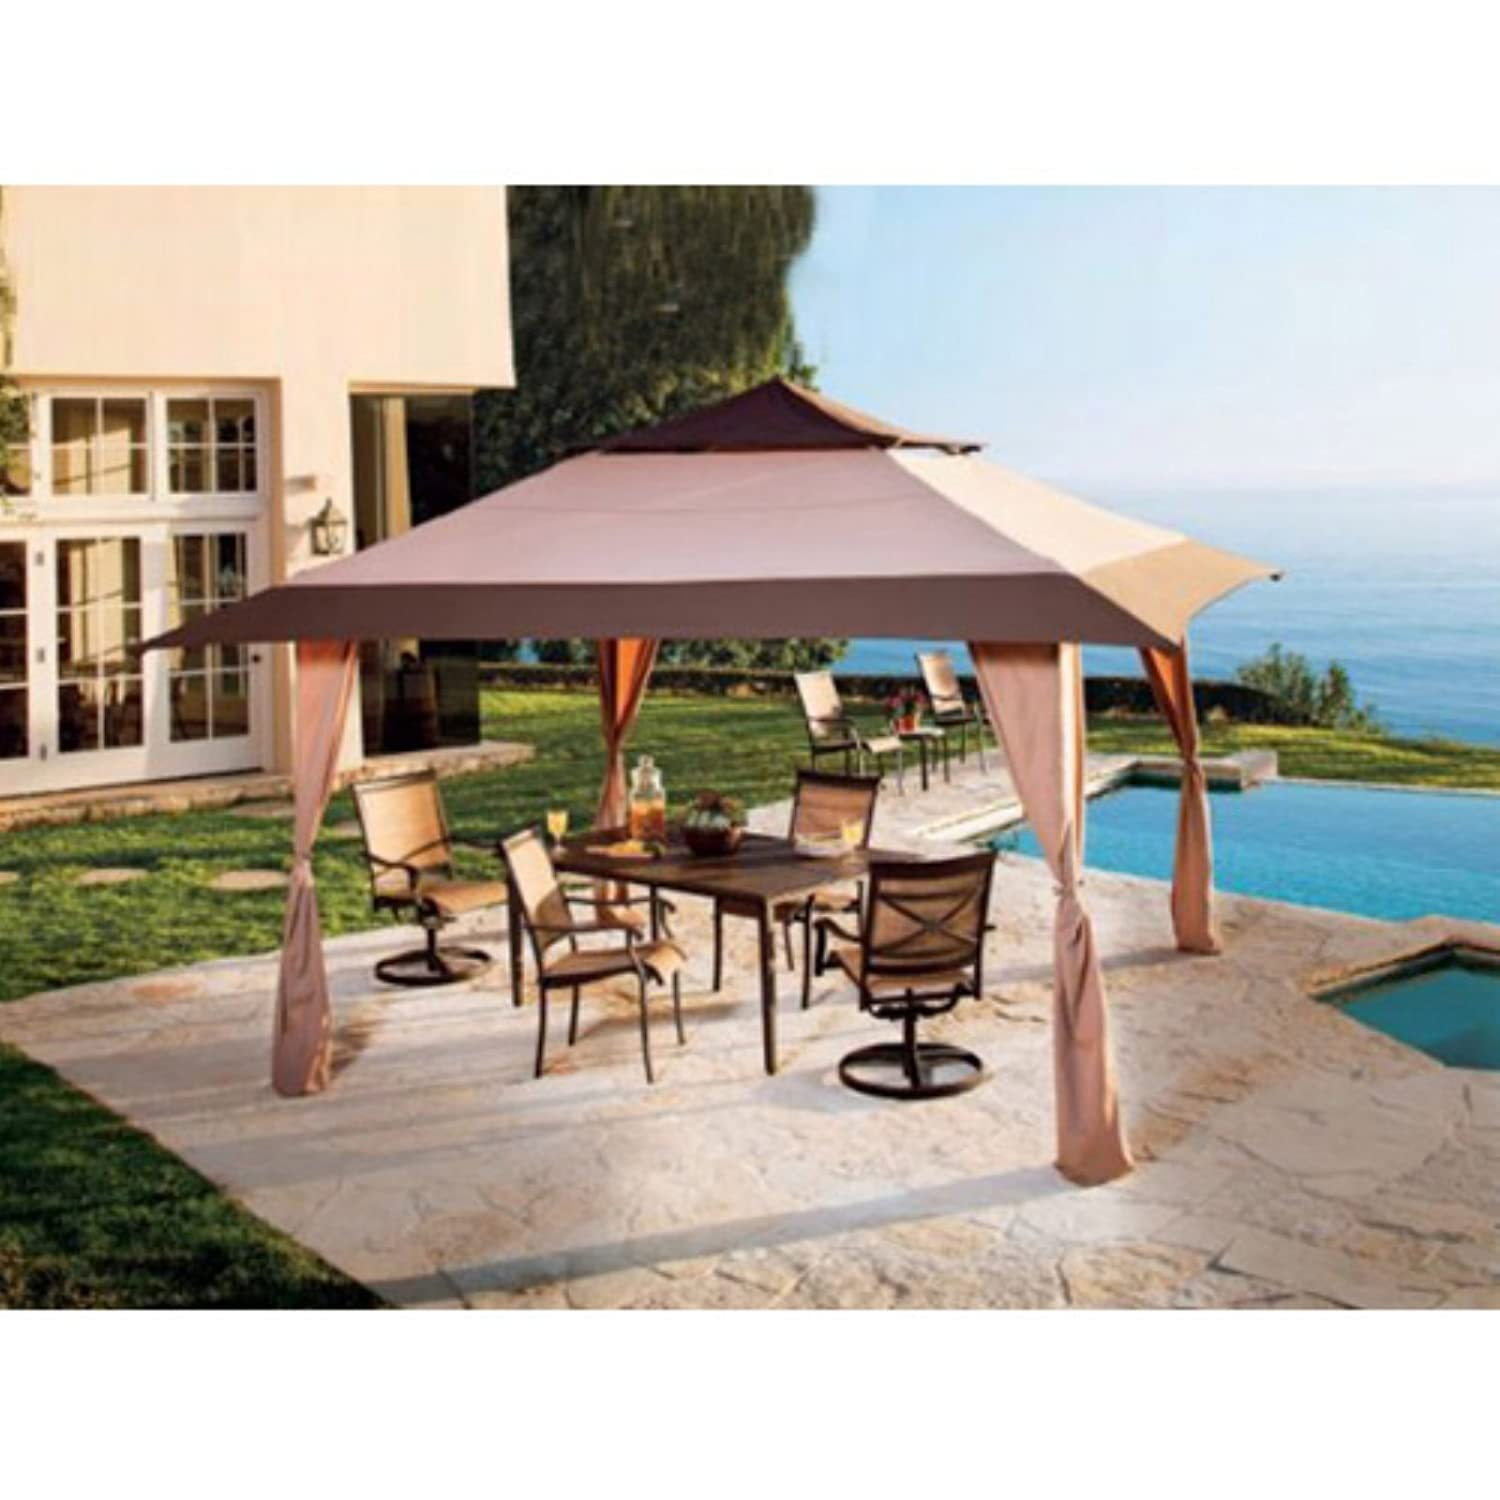 Amazon.com  E-Z Up 13 x 13 Pagoda Gazebo Canopy  Outdoor Canopies  Garden u0026 Outdoor  sc 1 st  Amazon.com & Amazon.com : E-Z Up 13 x 13 Pagoda Gazebo Canopy : Outdoor ...